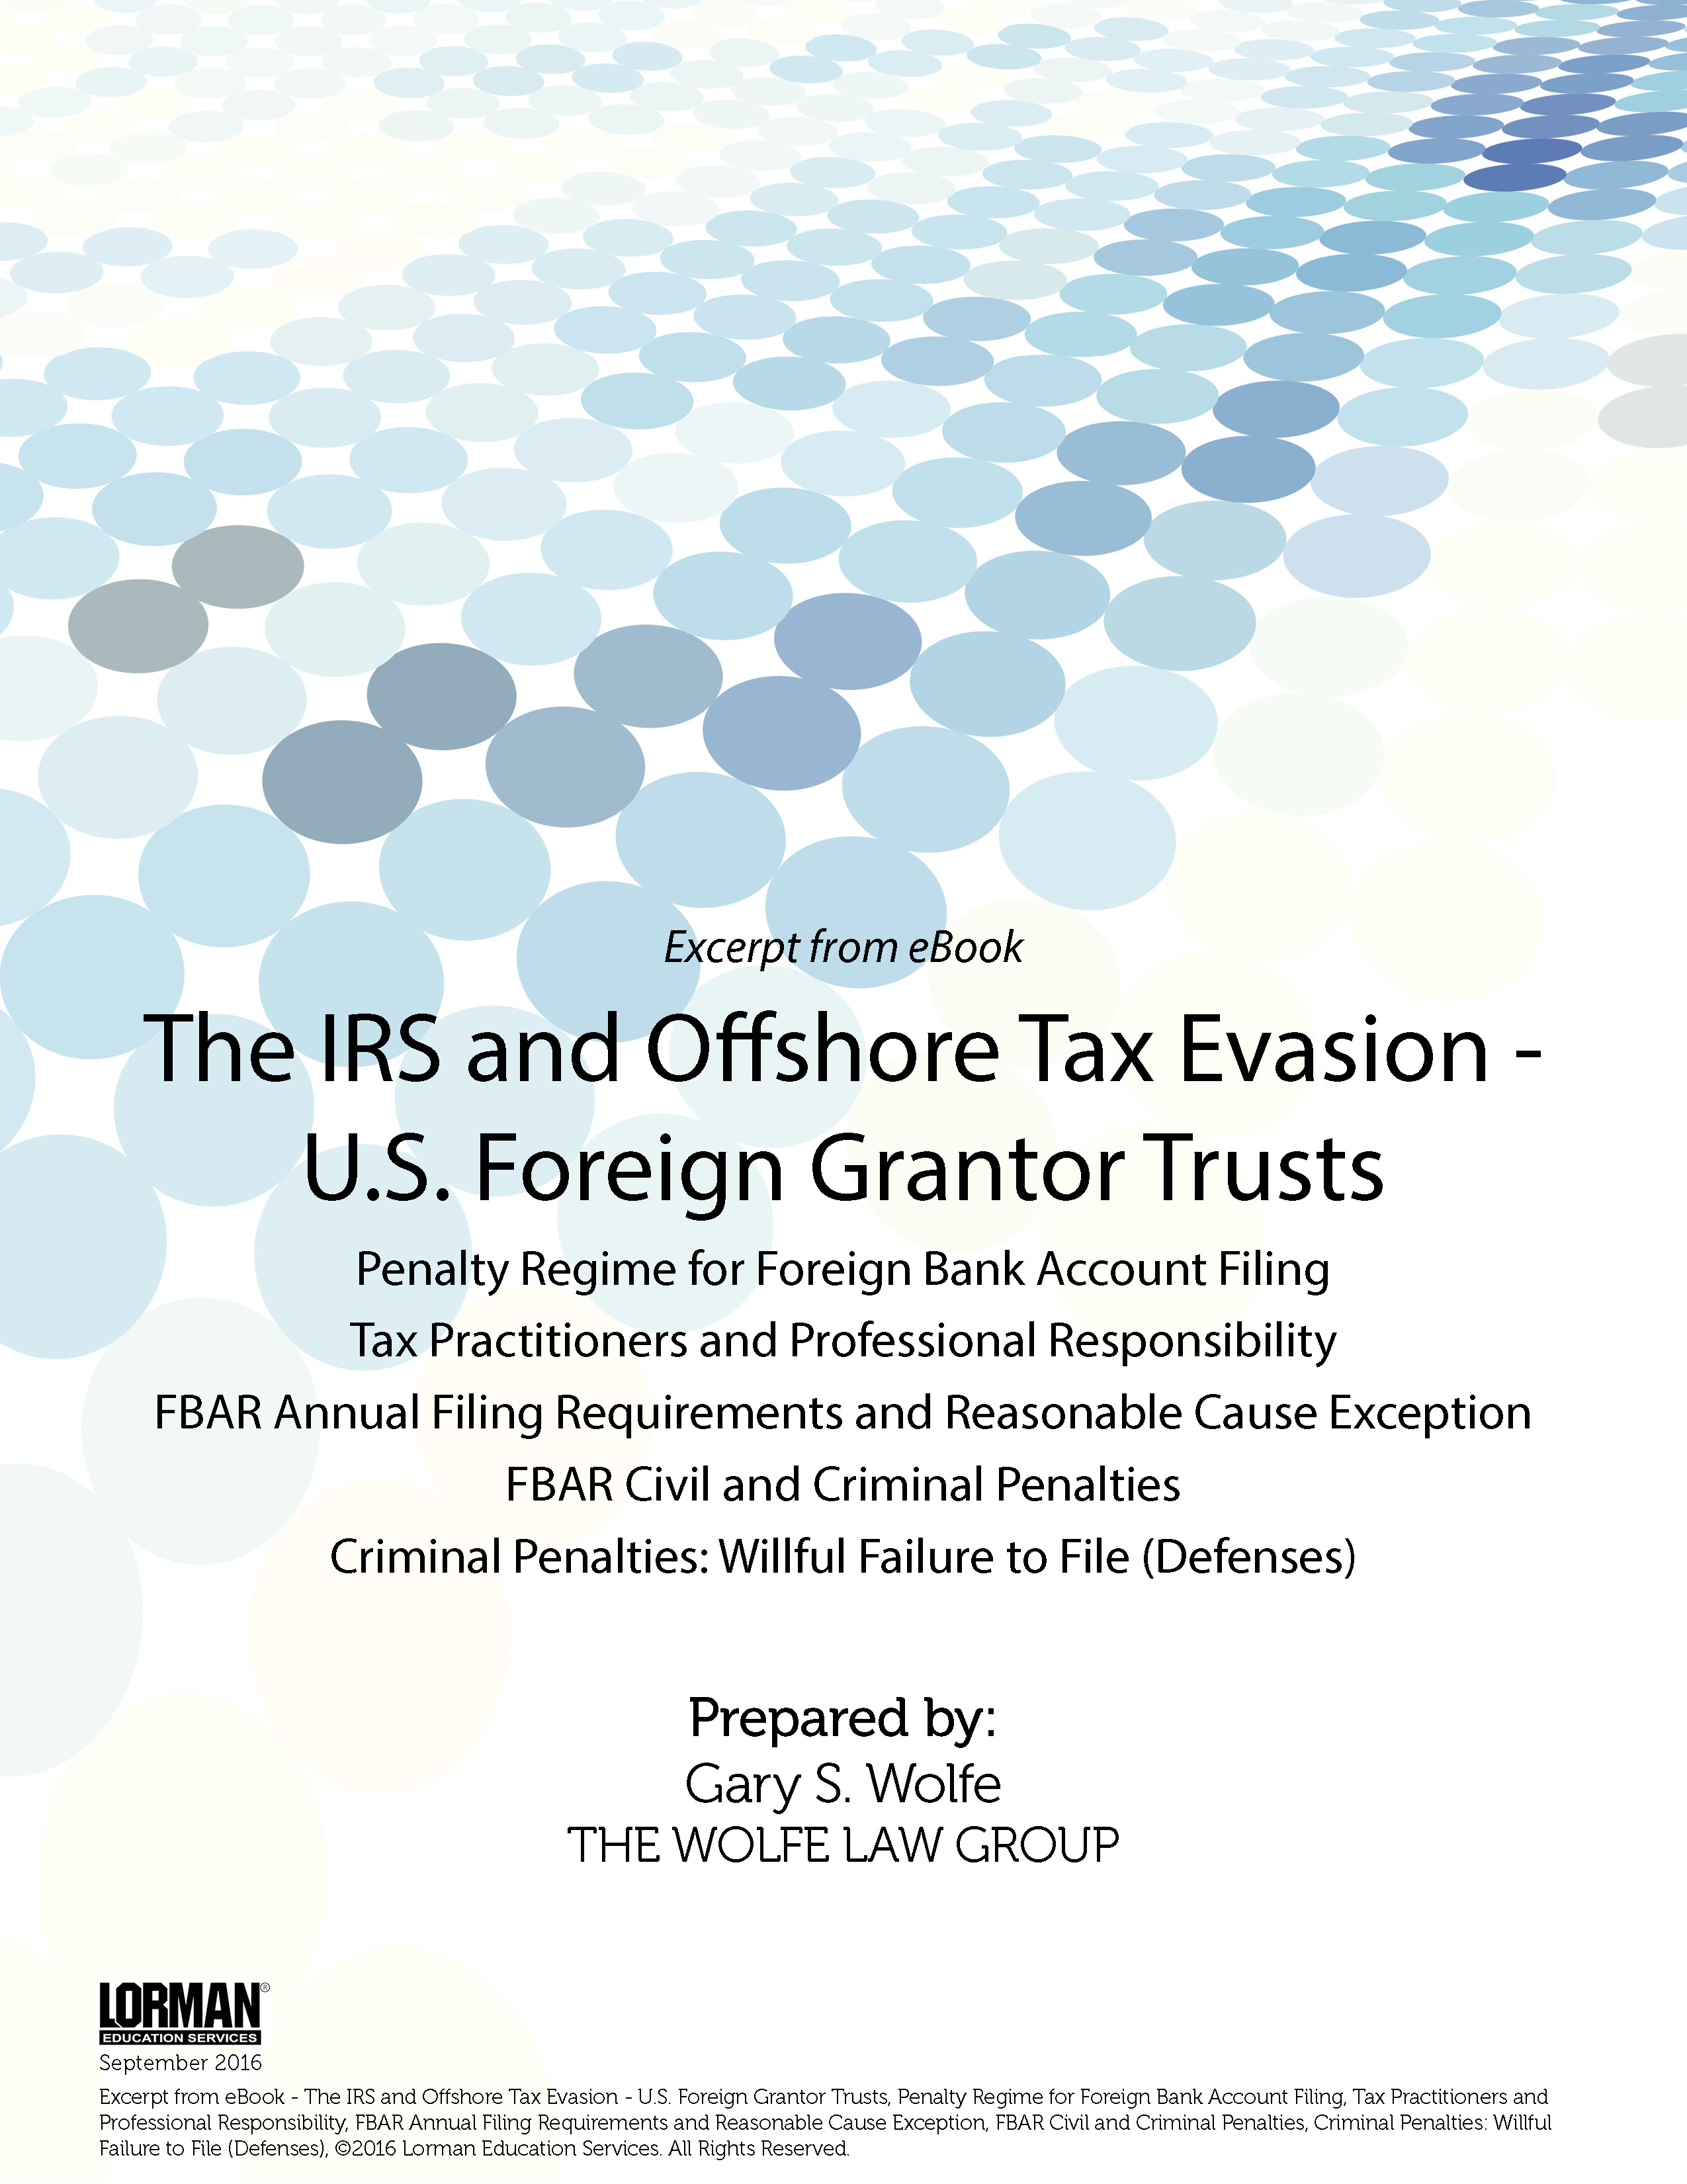 The IRS and Offshore Tax Evasion - U.S. Foreign Grantor Trusts: Penalty Regime for Foreign Bank Account Filing, Tax Practitioners and Professional Responsibility